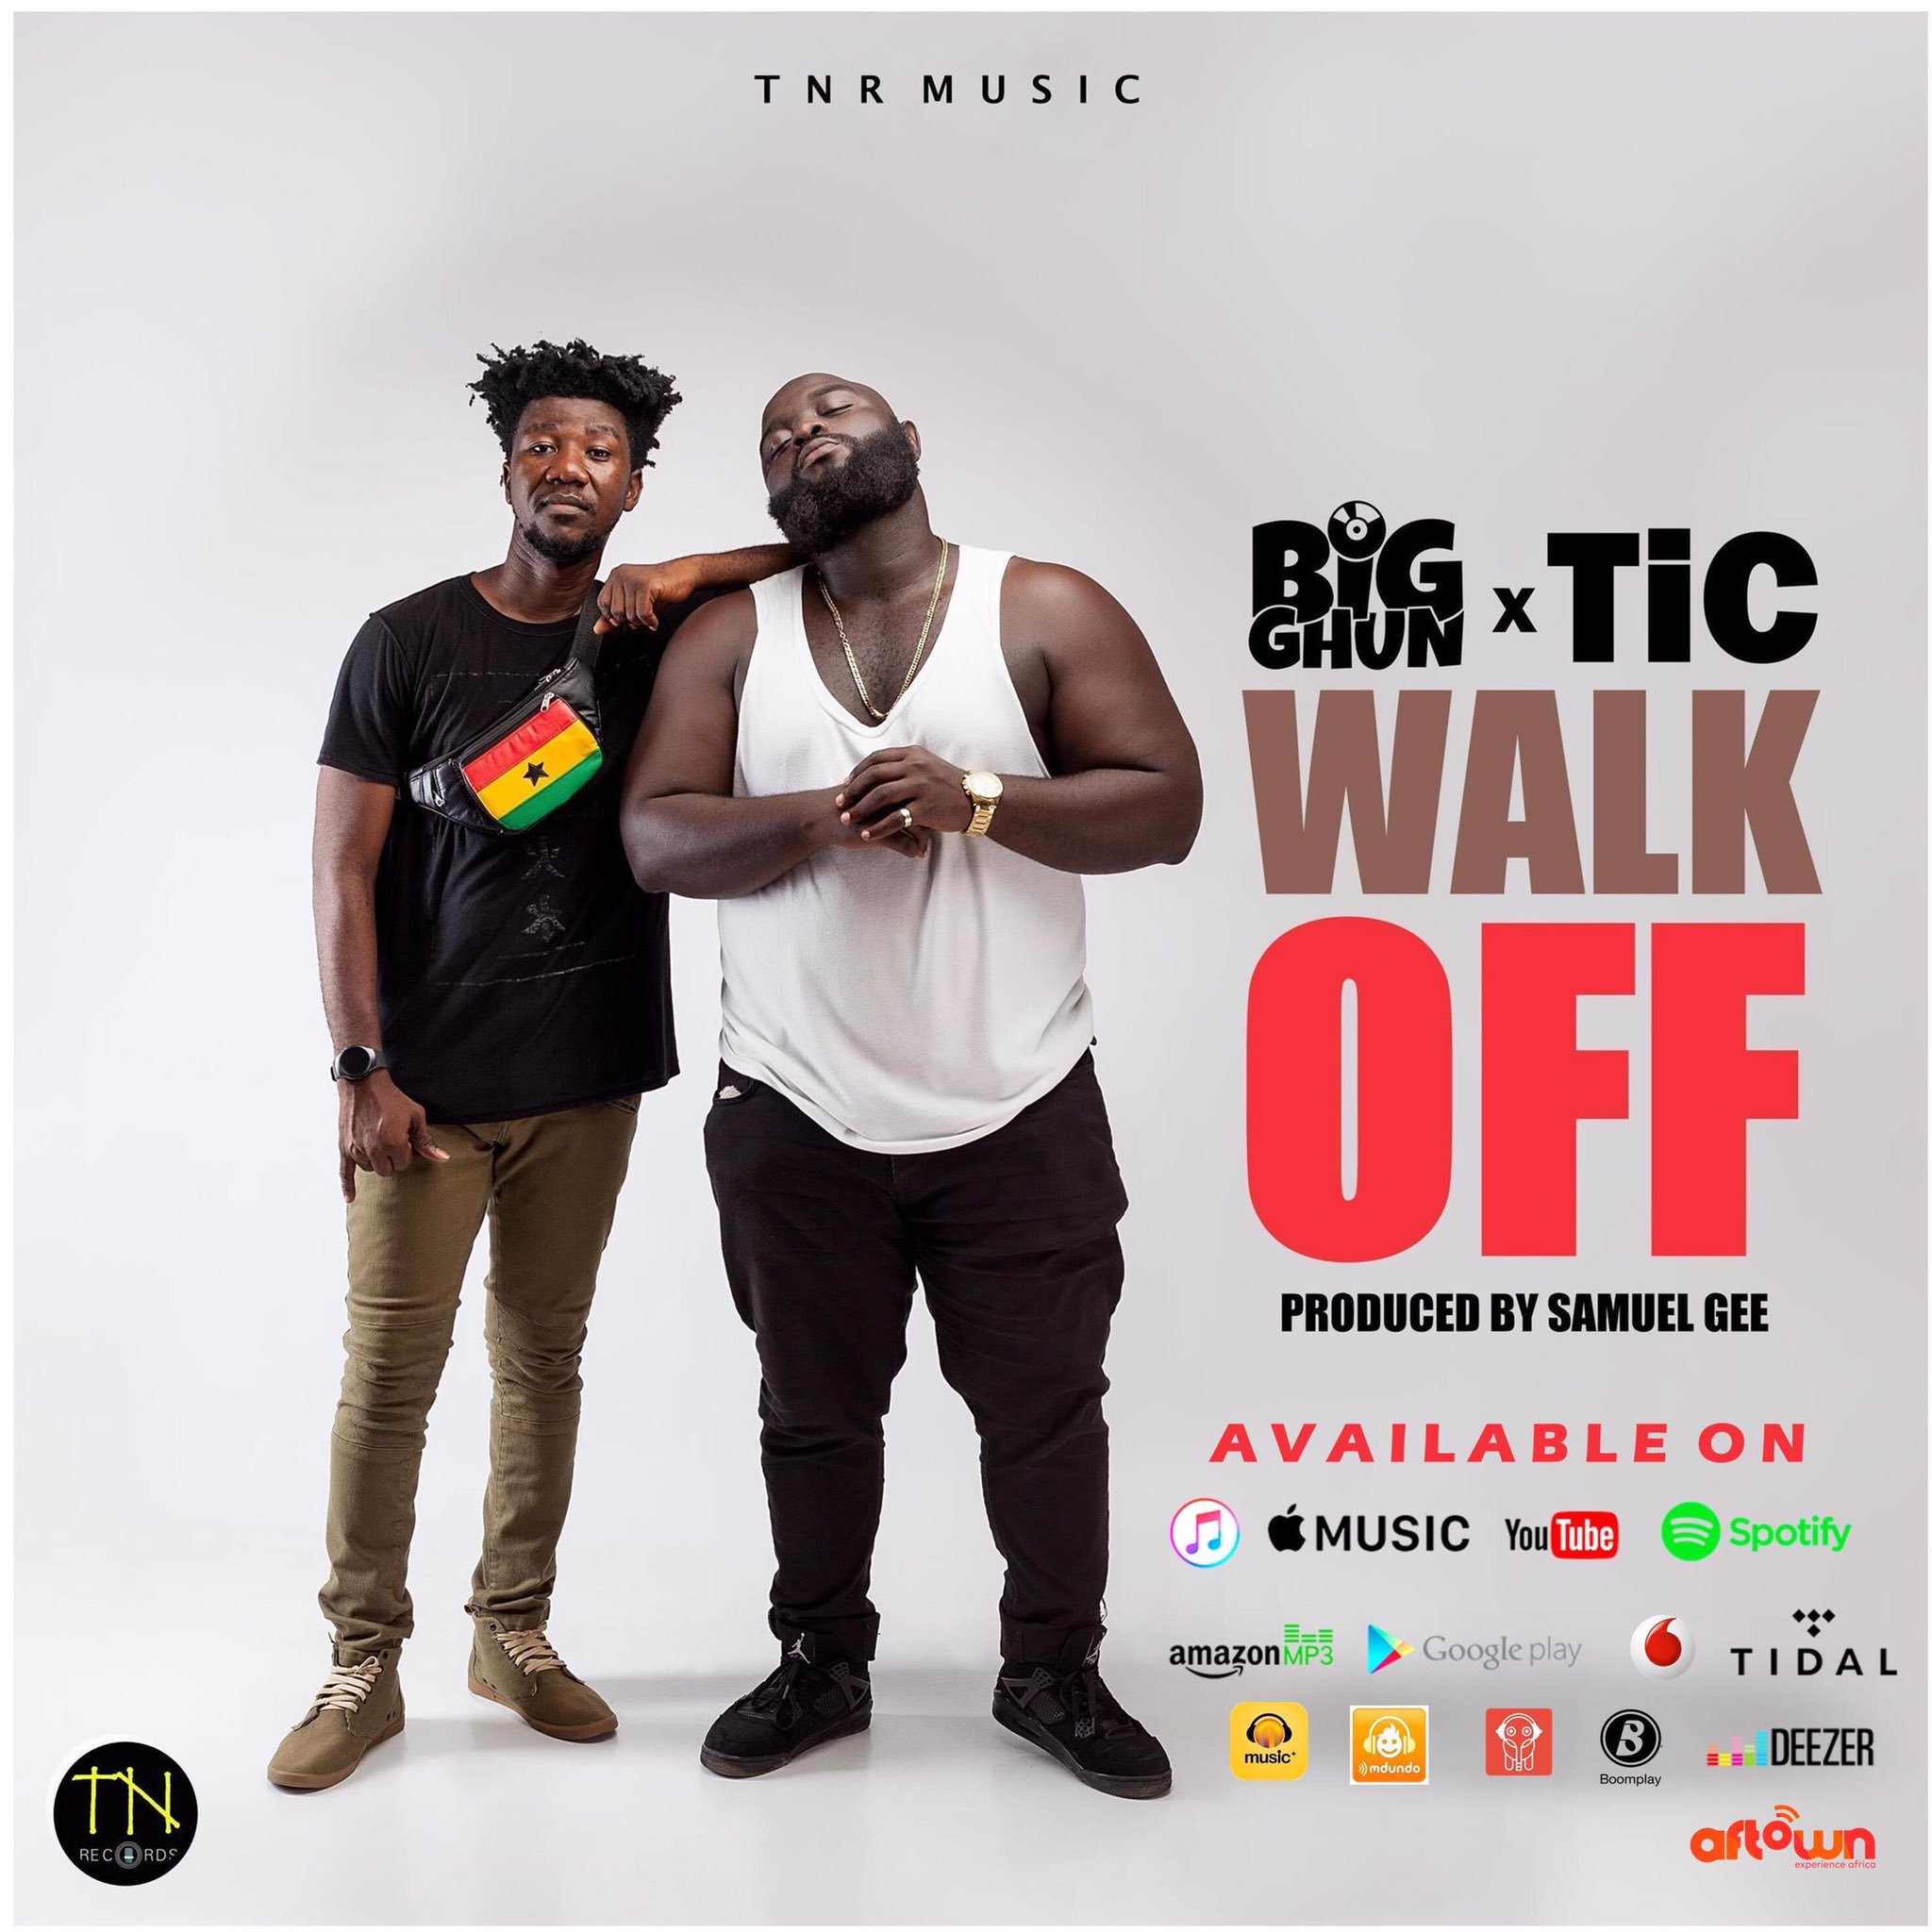 Big Ghun releases 'Walk Off' featuring TiC